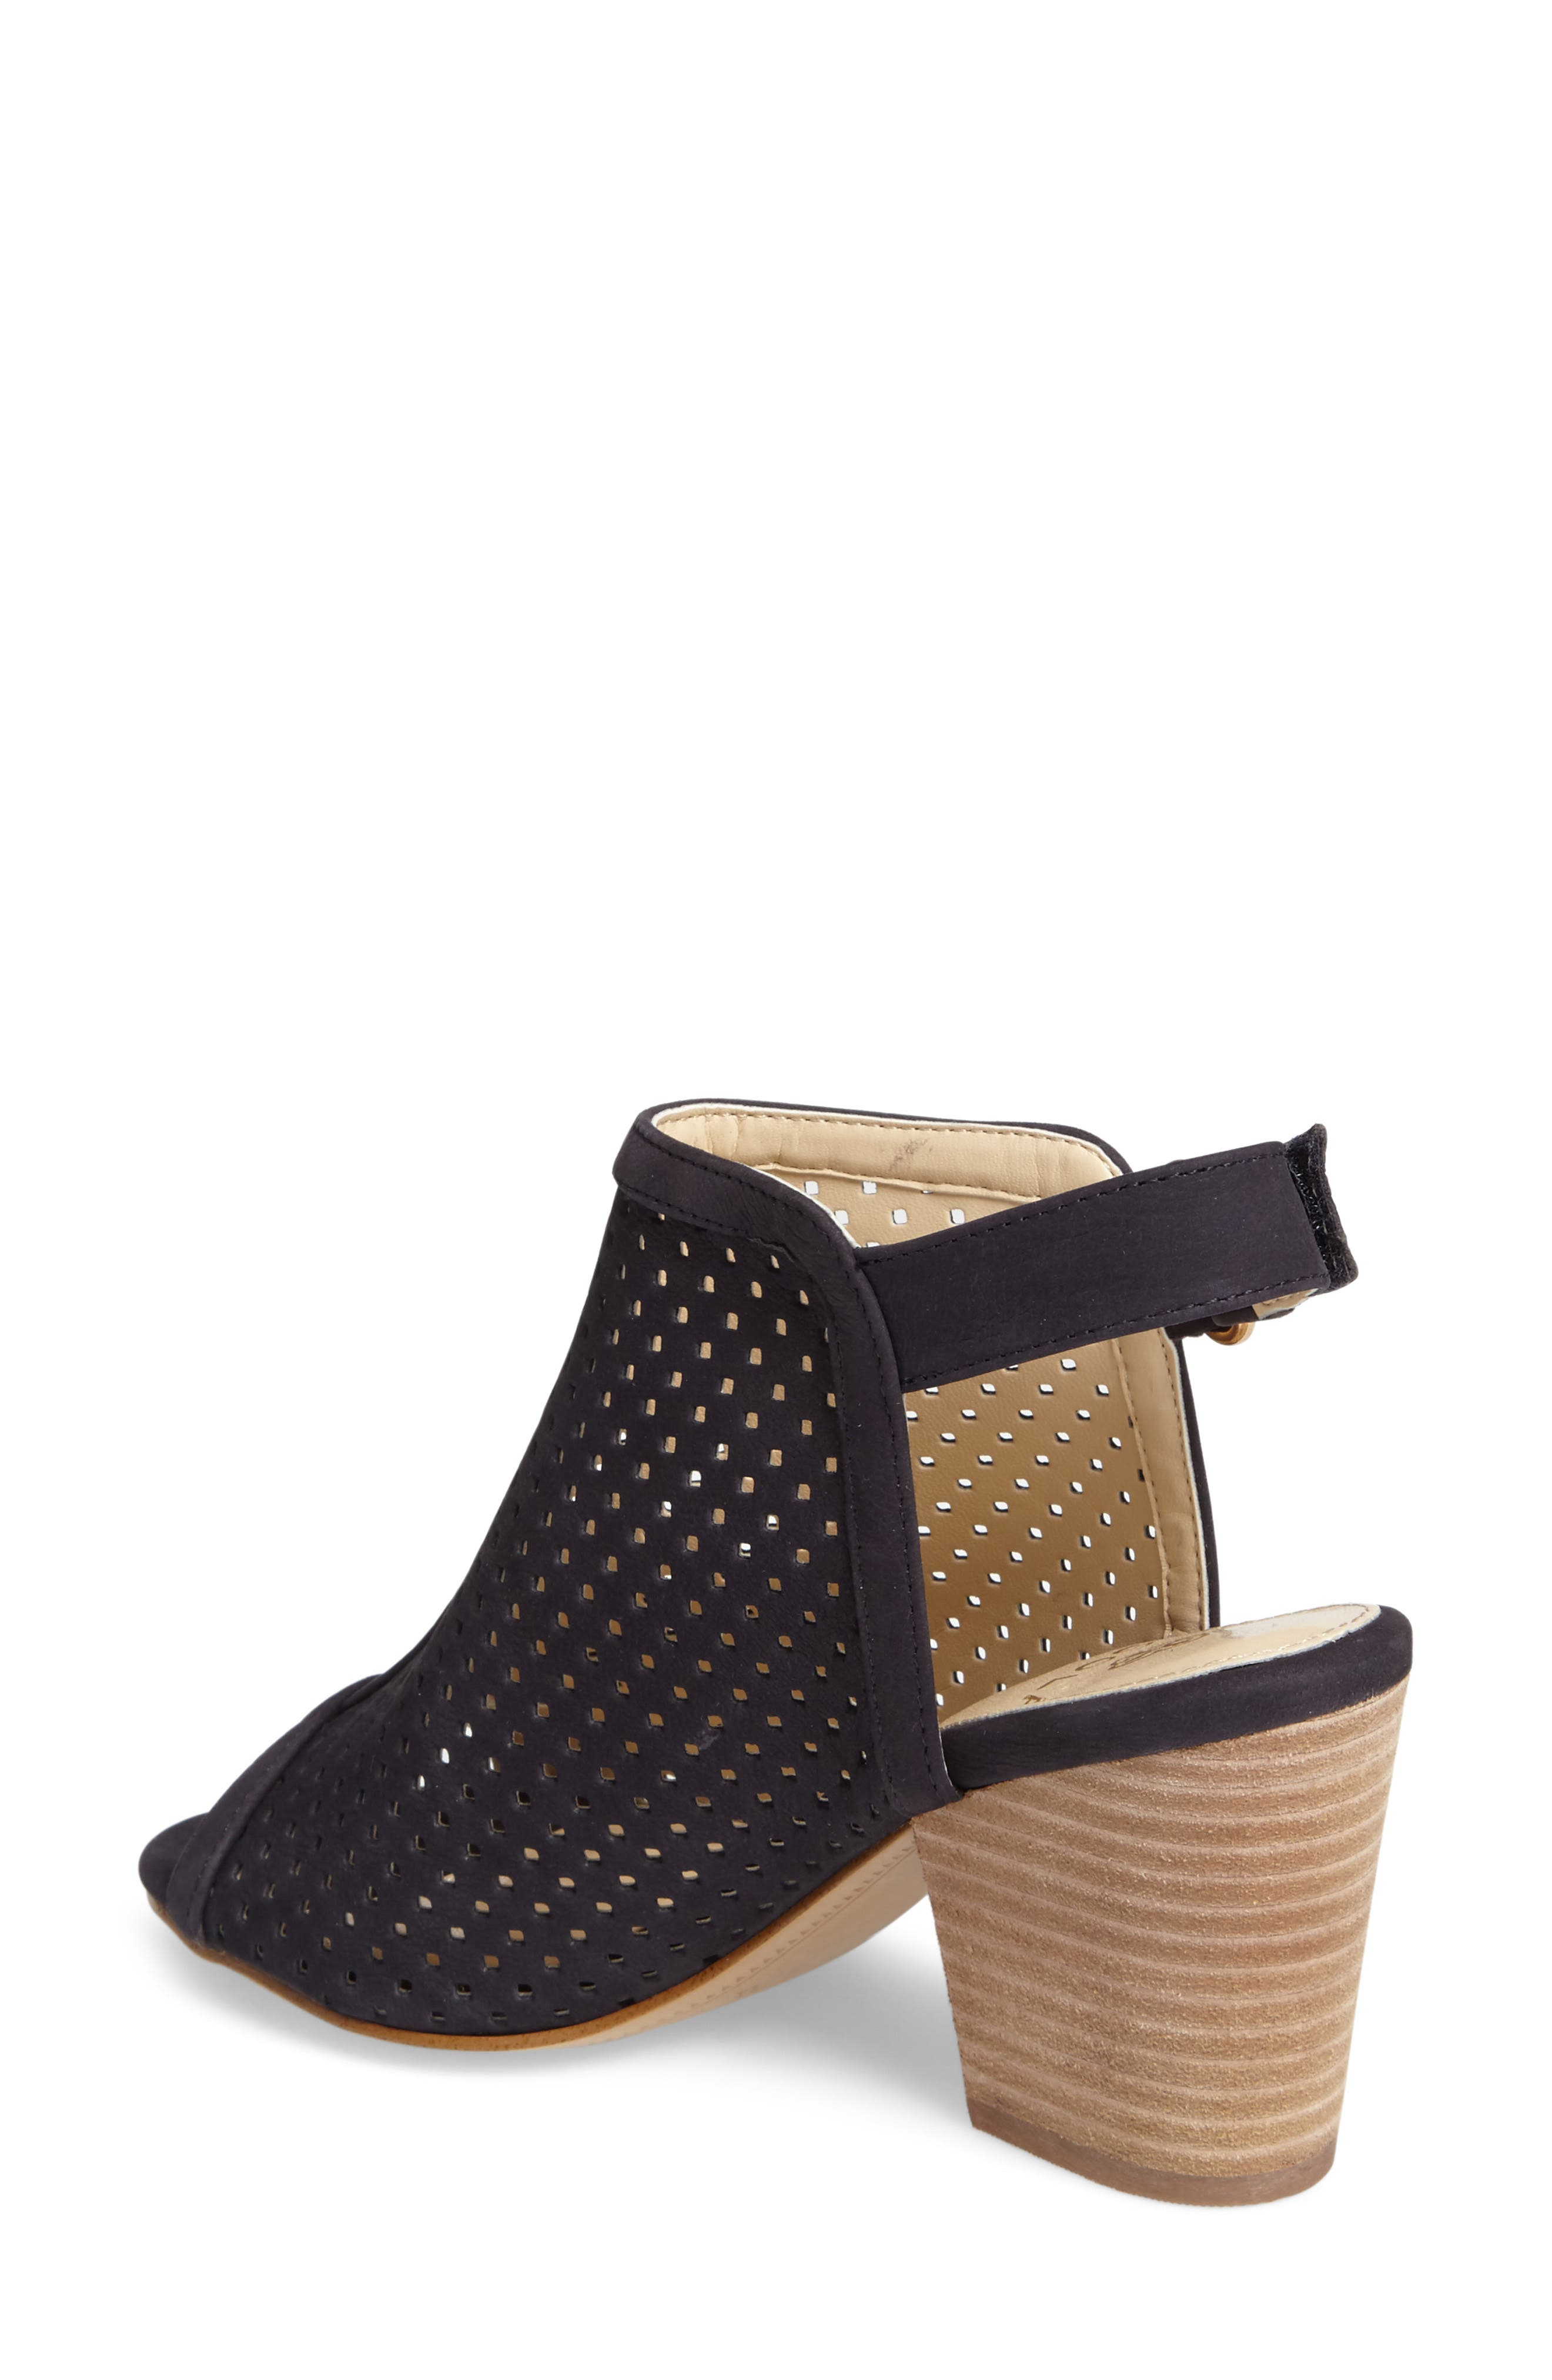 ,                             'Lora' Perforated Open-Toe Bootie Sandal,                             Alternate thumbnail 19, color,                             410